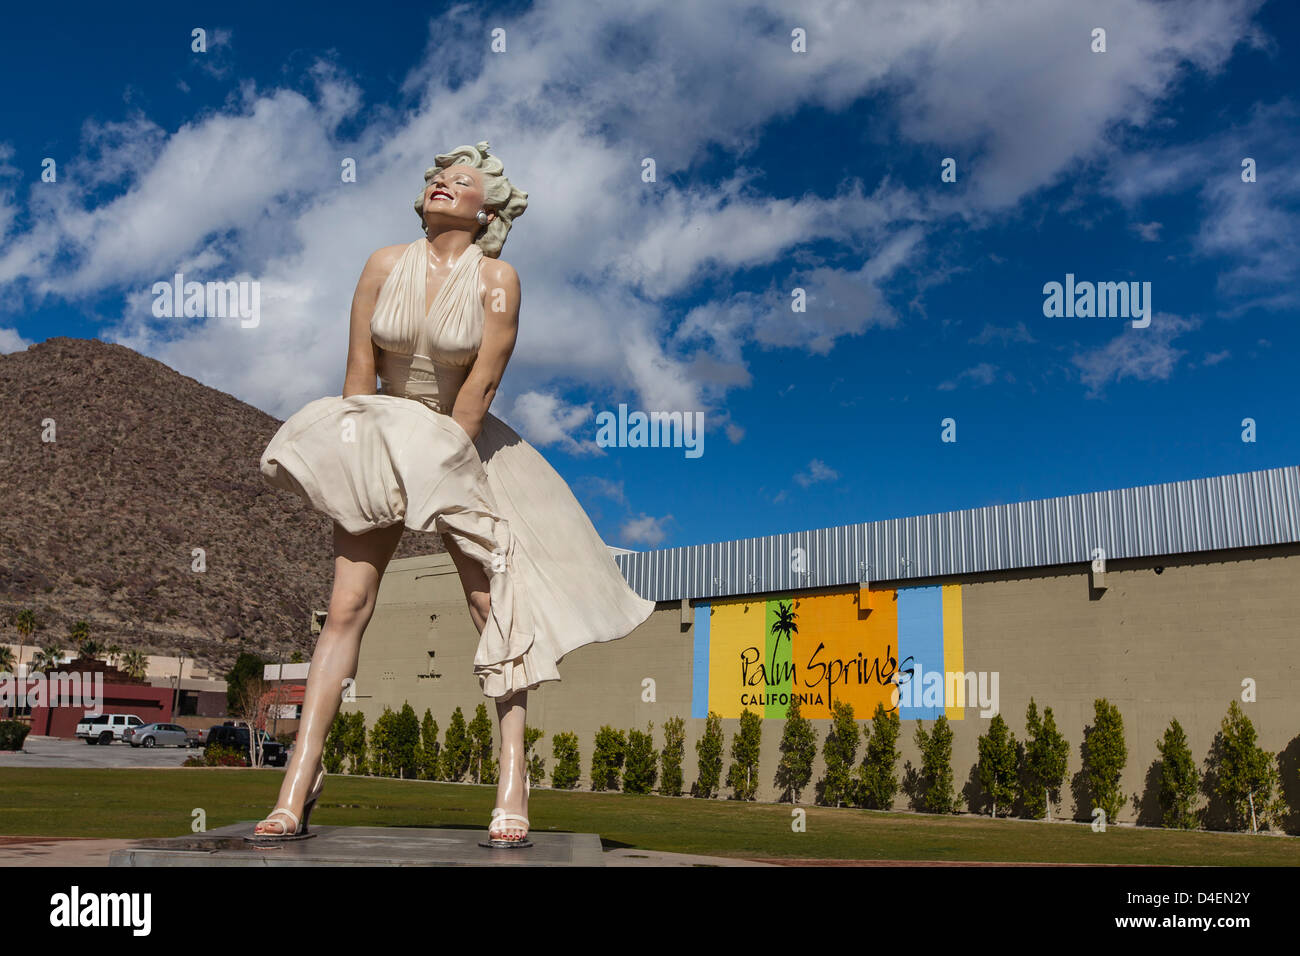 26 pies de altura estatua de Marilyn Monroe por Seward Johnson, heredero de la fortuna de Johnson & Johnson, Imagen De Stock